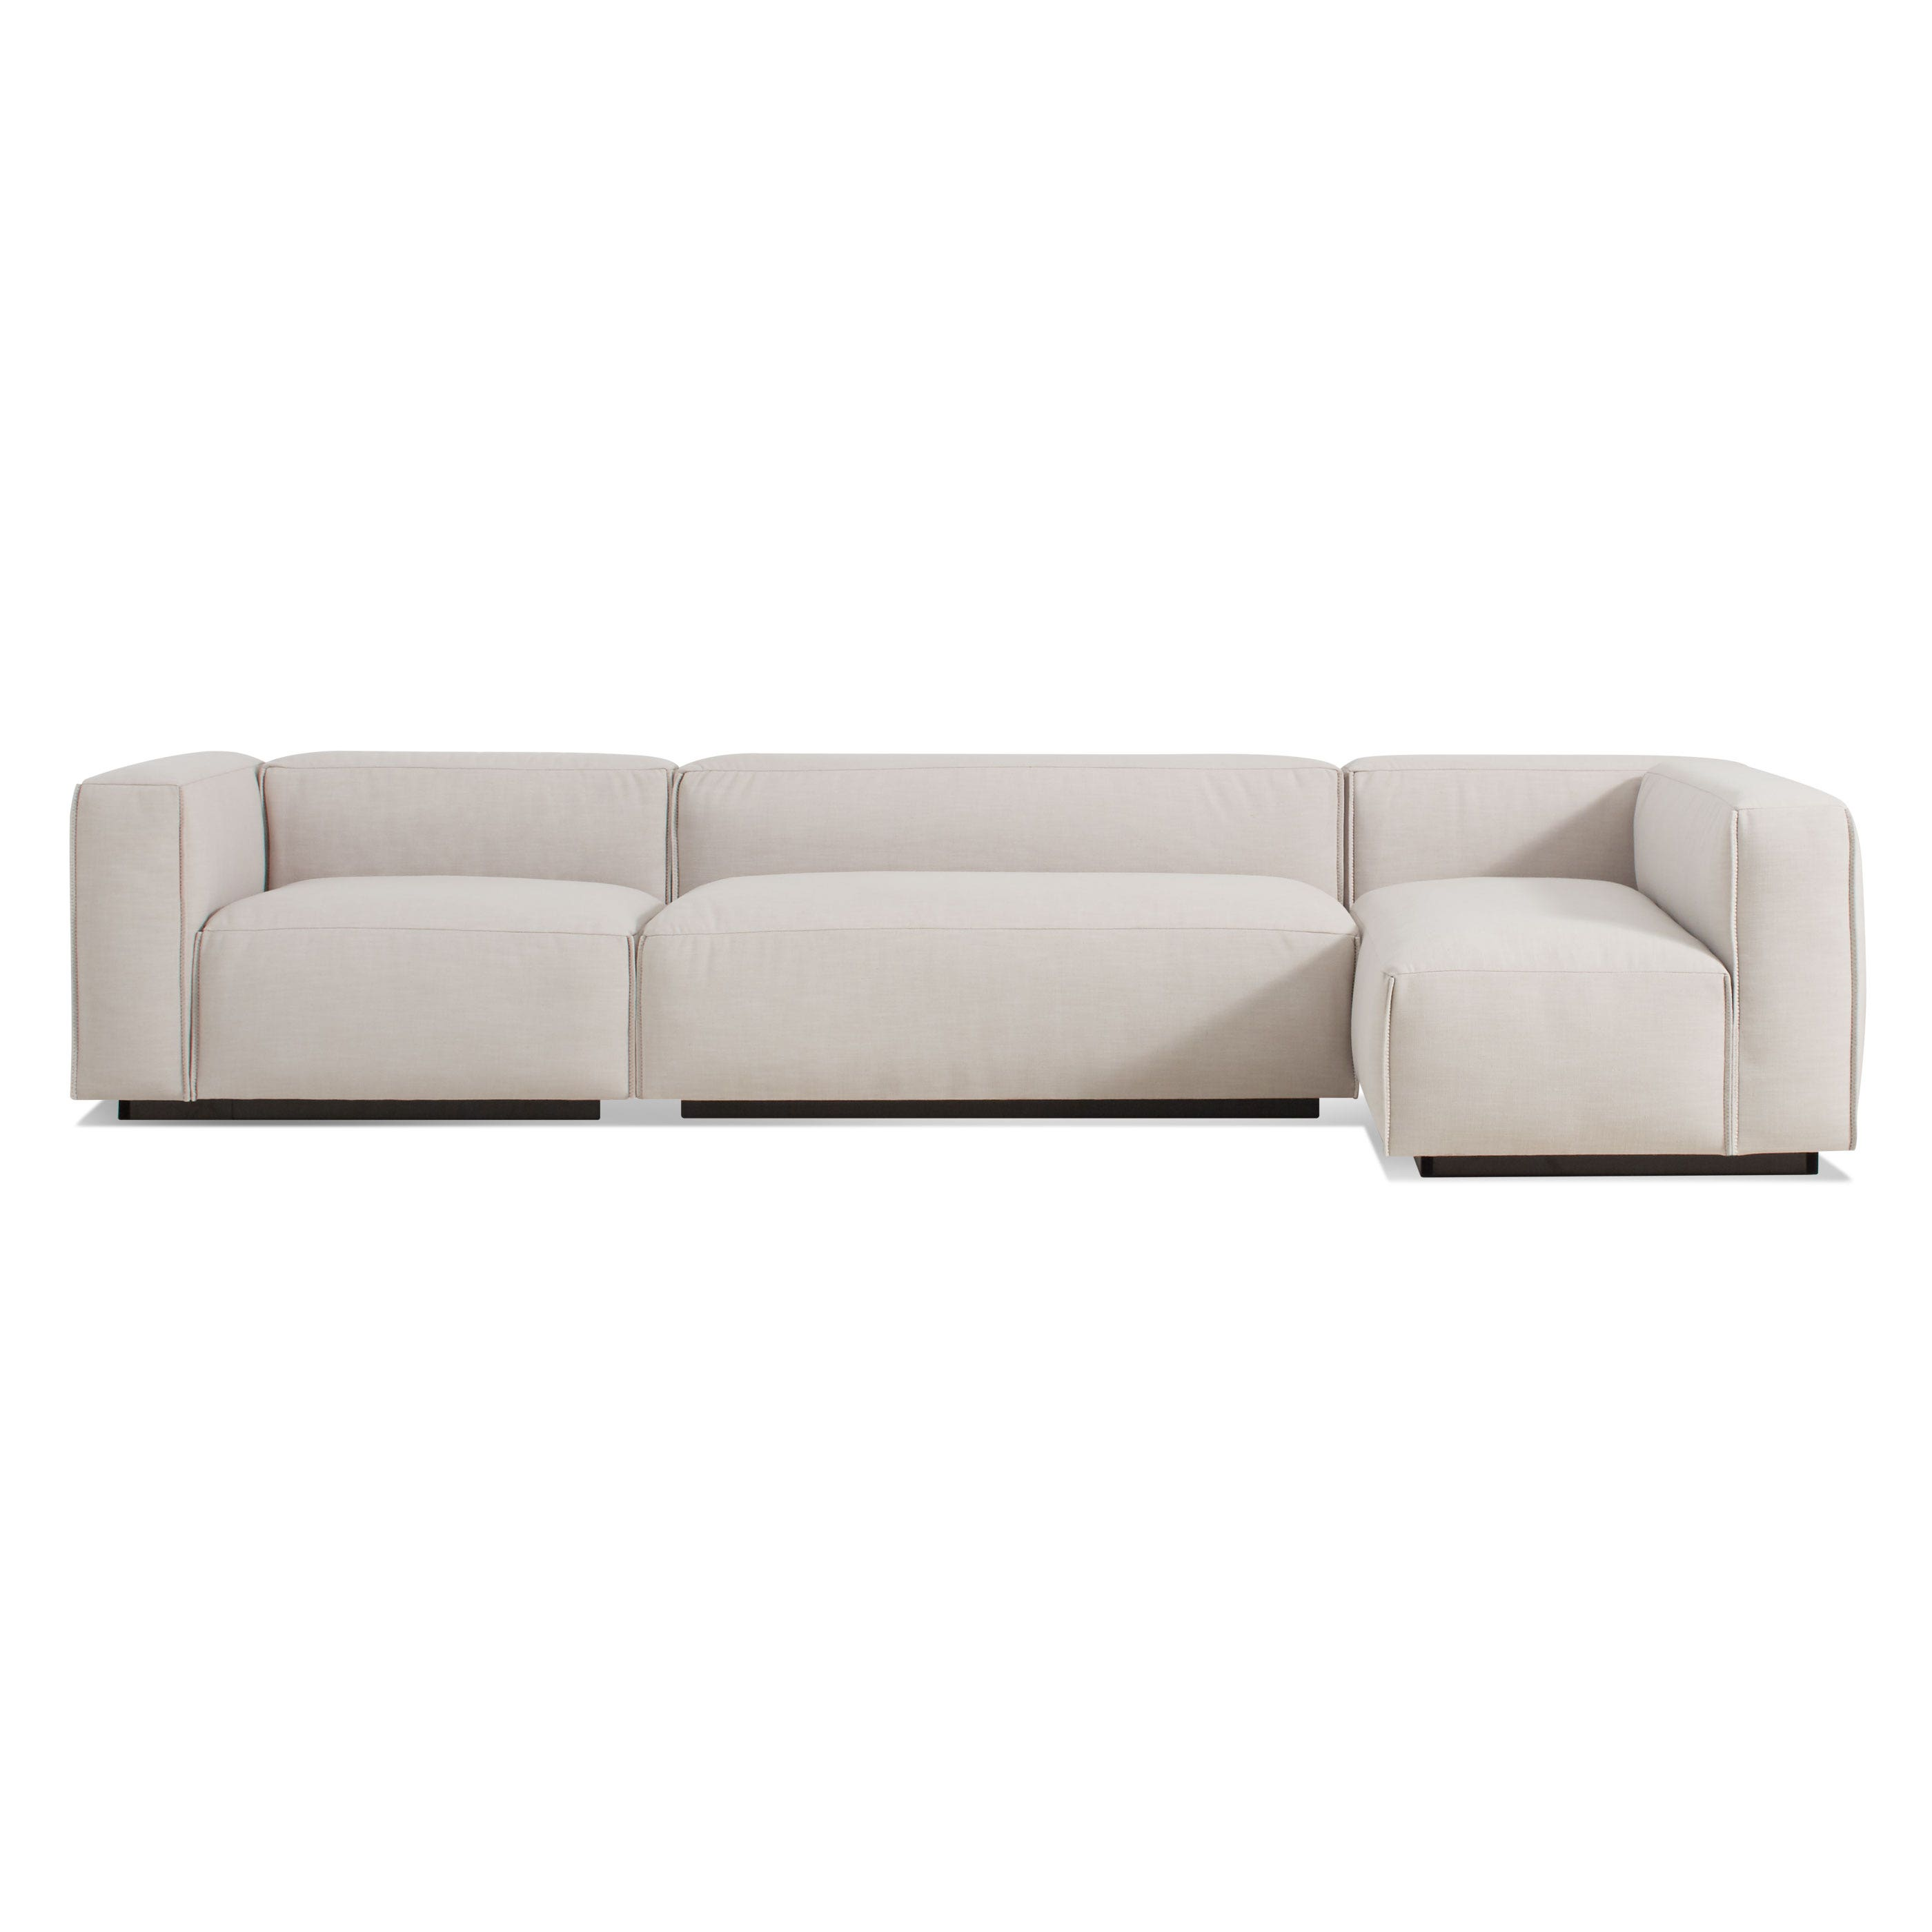 Cleon Medium Sectional Sofa Modern Sofas and Sectionals